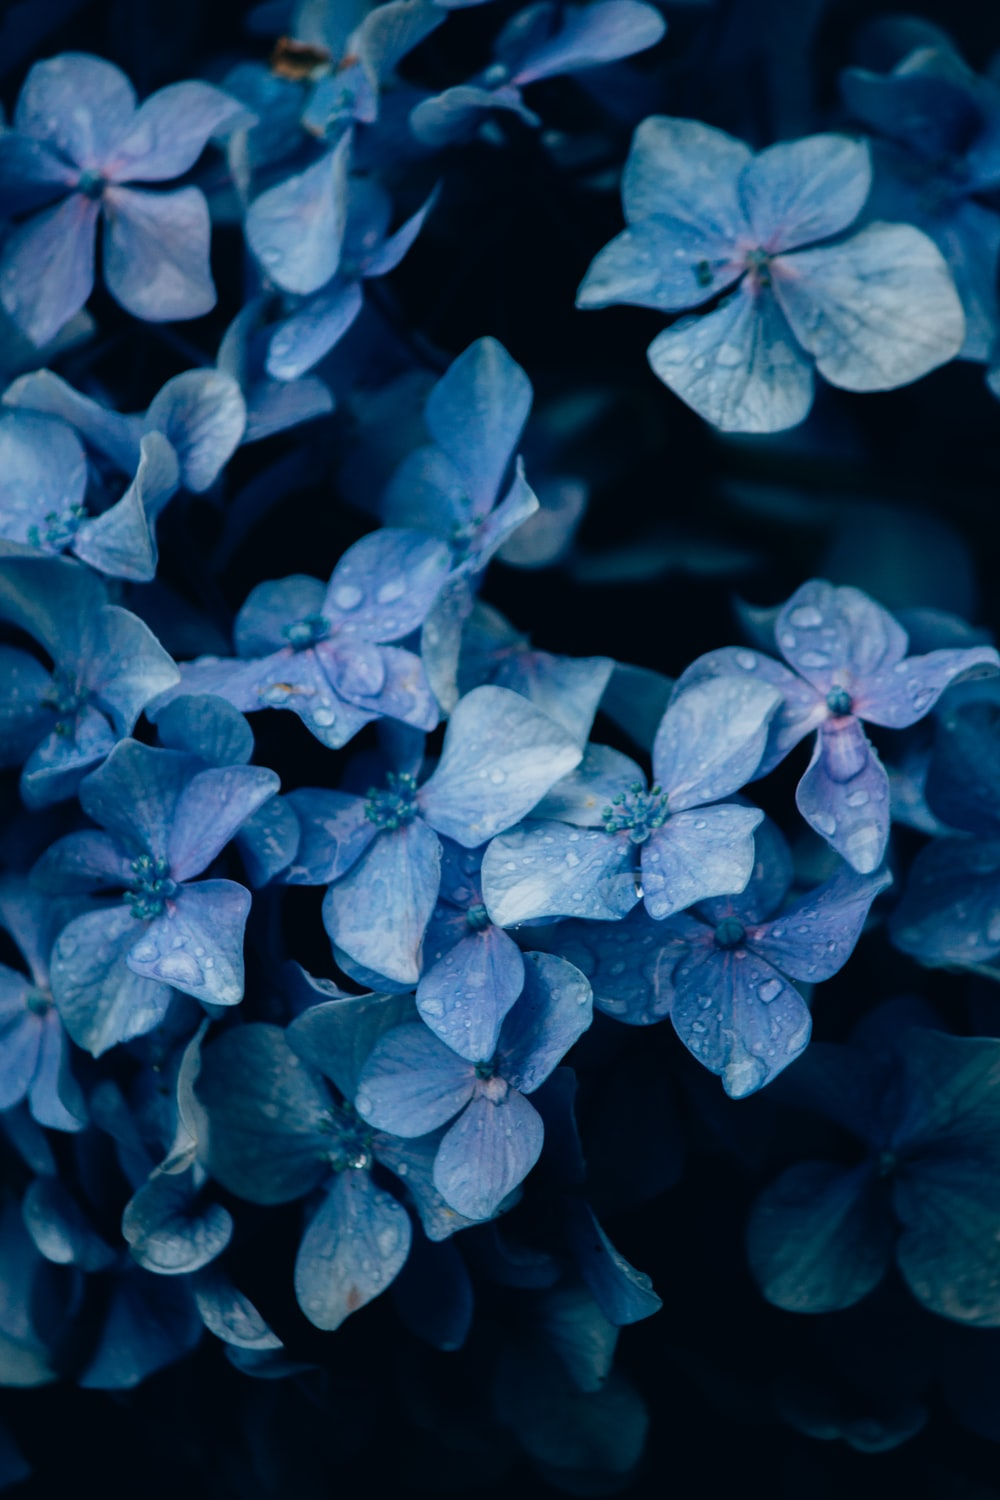 purple leaves in close up photography